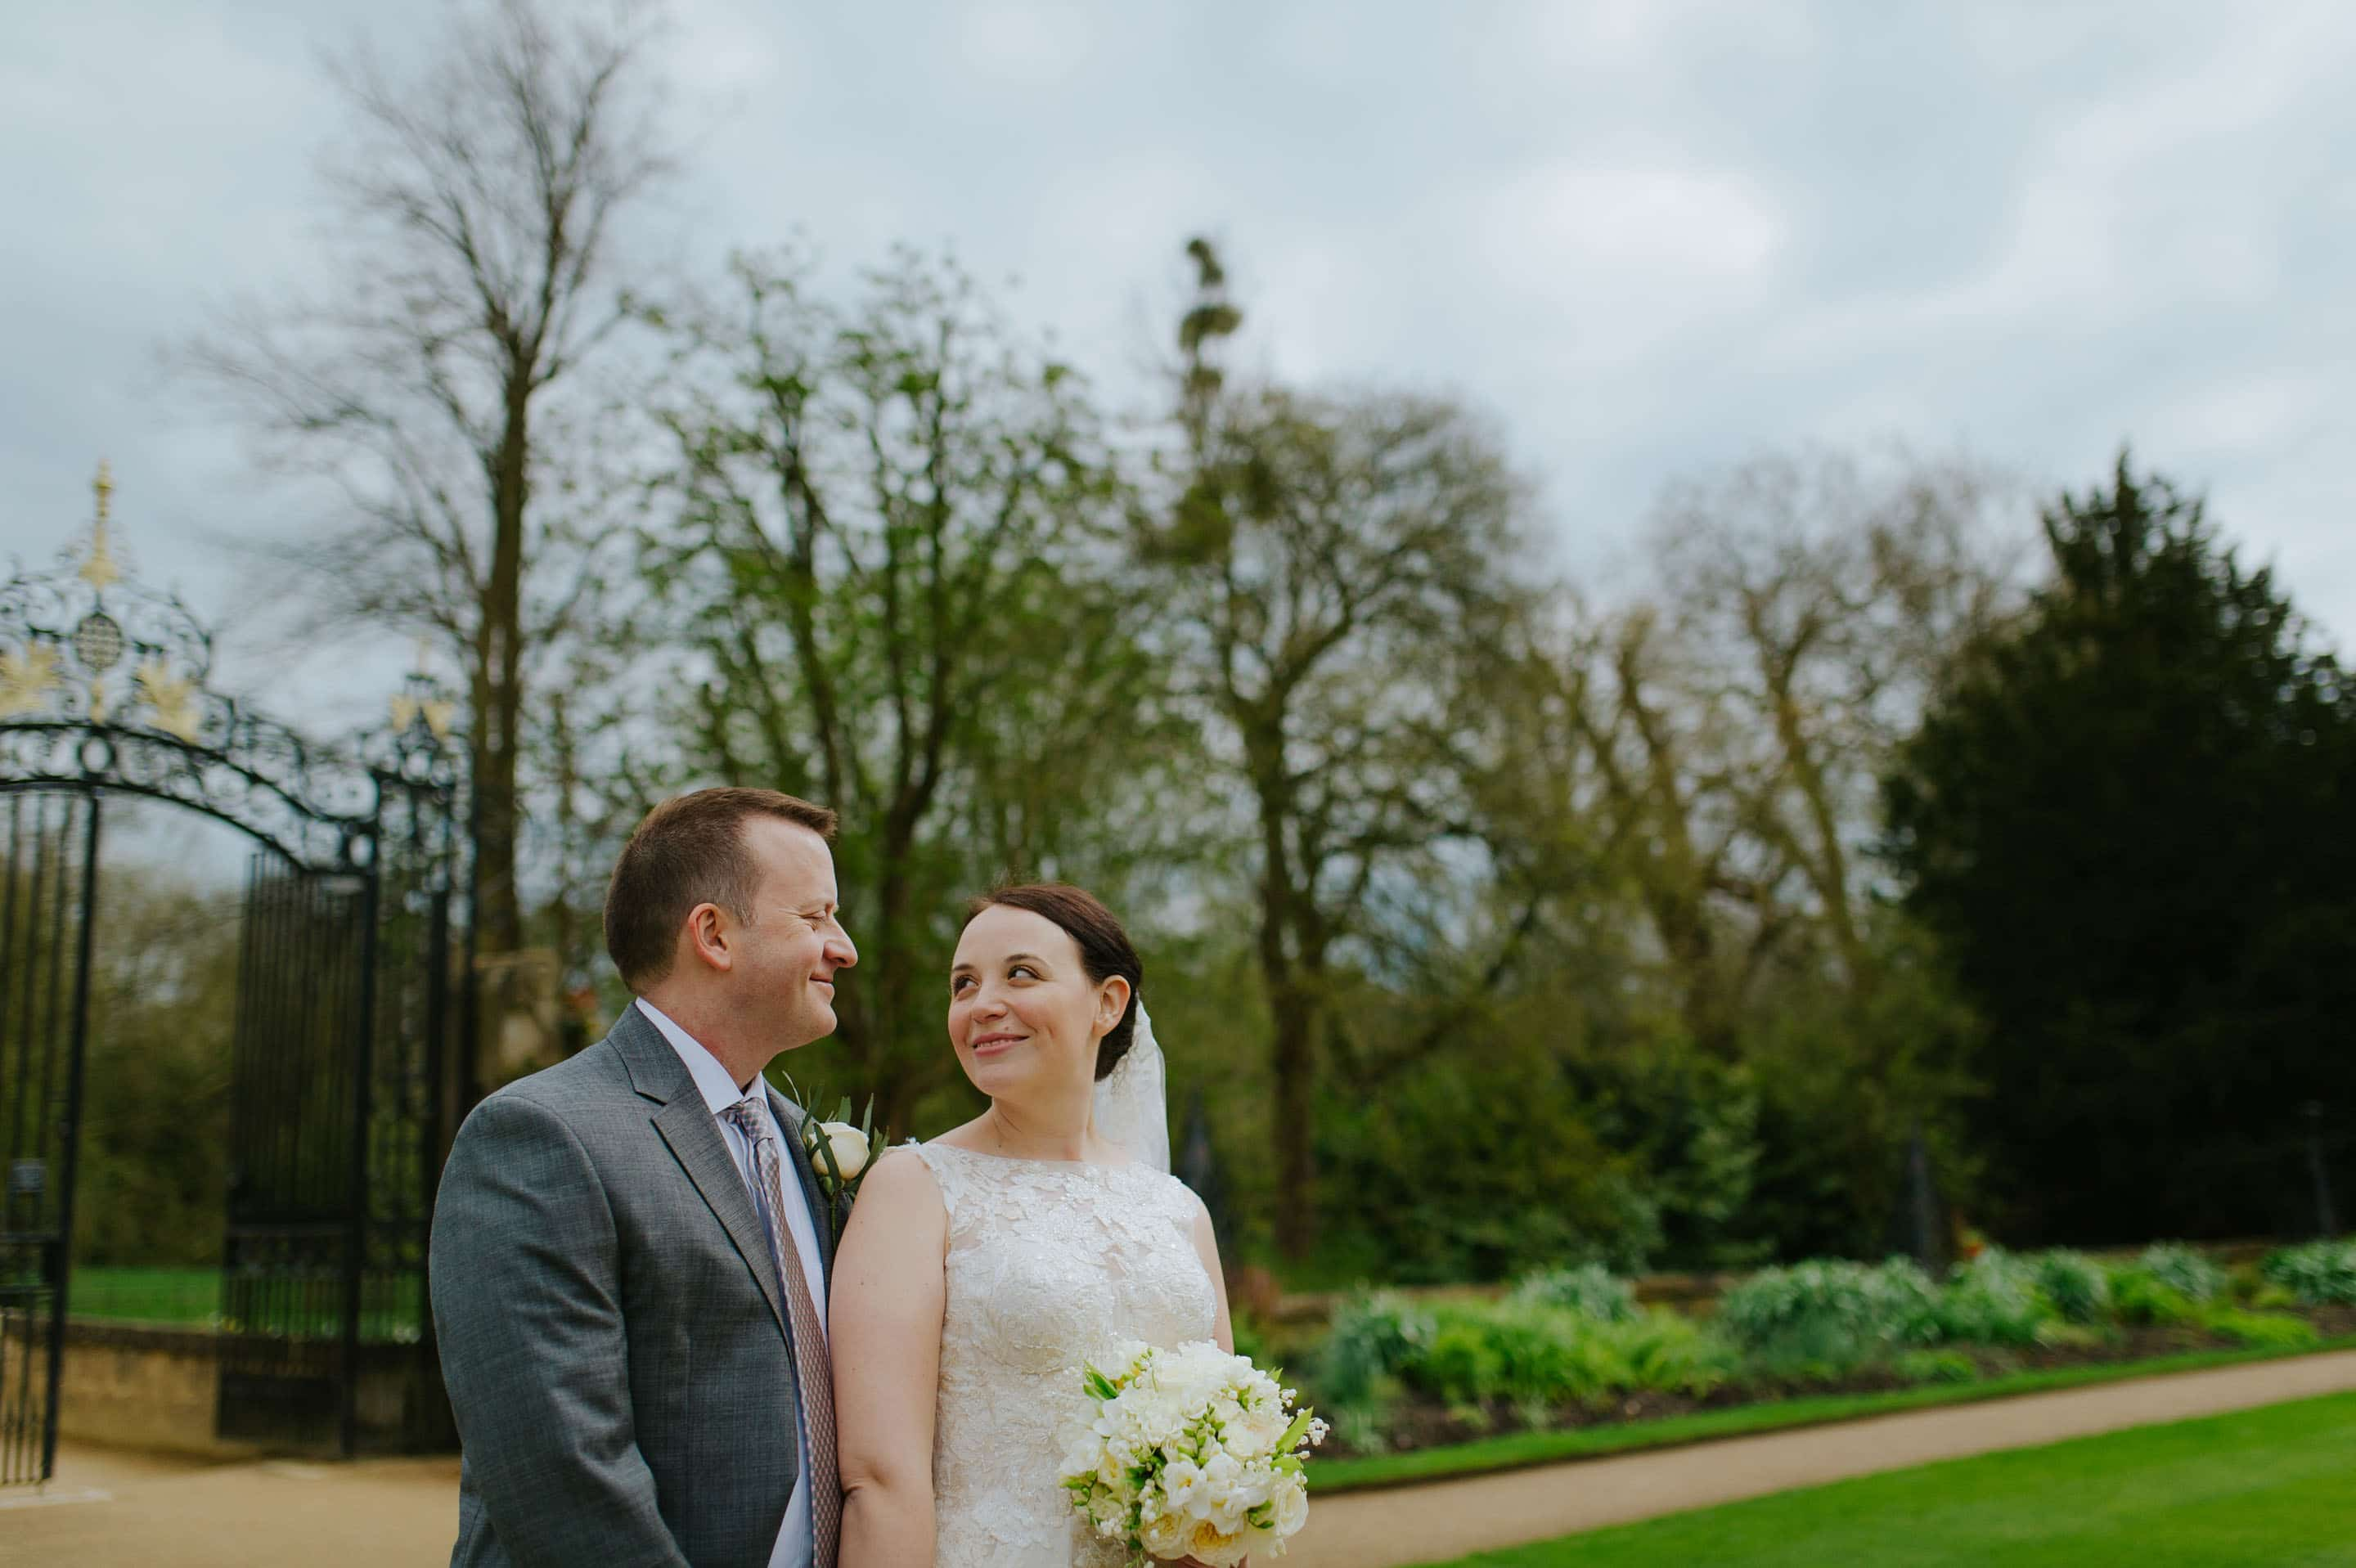 wedding at magdalen college in oxford 15 - Tommie + Virginia | Wedding at Magdalen College in Oxford